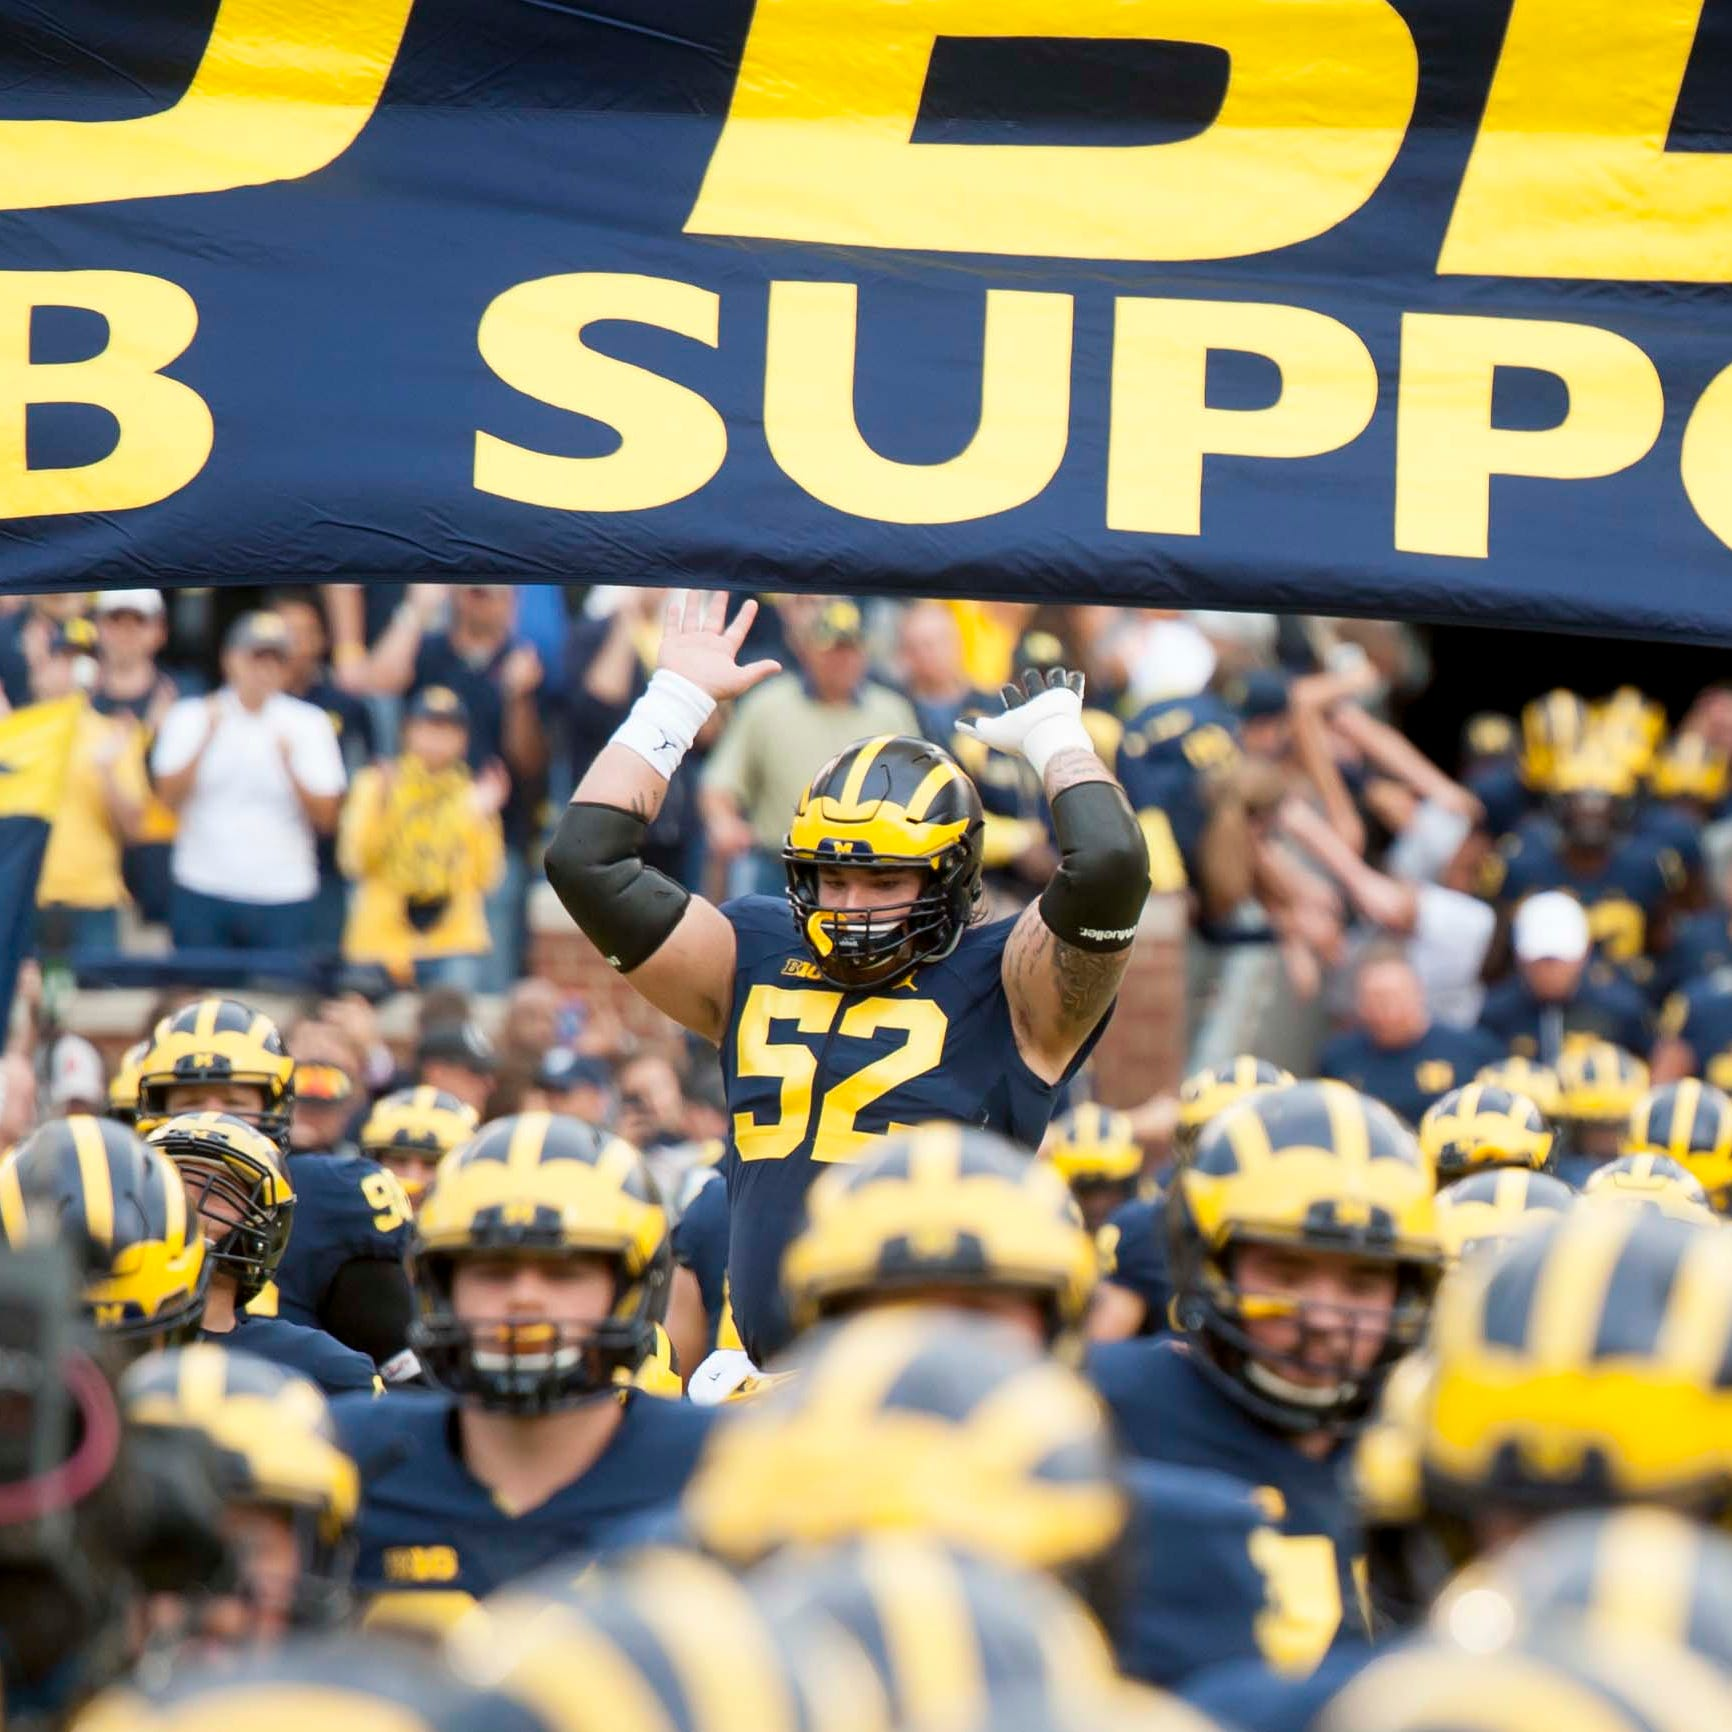 Report: Michigan hires Shaun Nua as defensive line coach